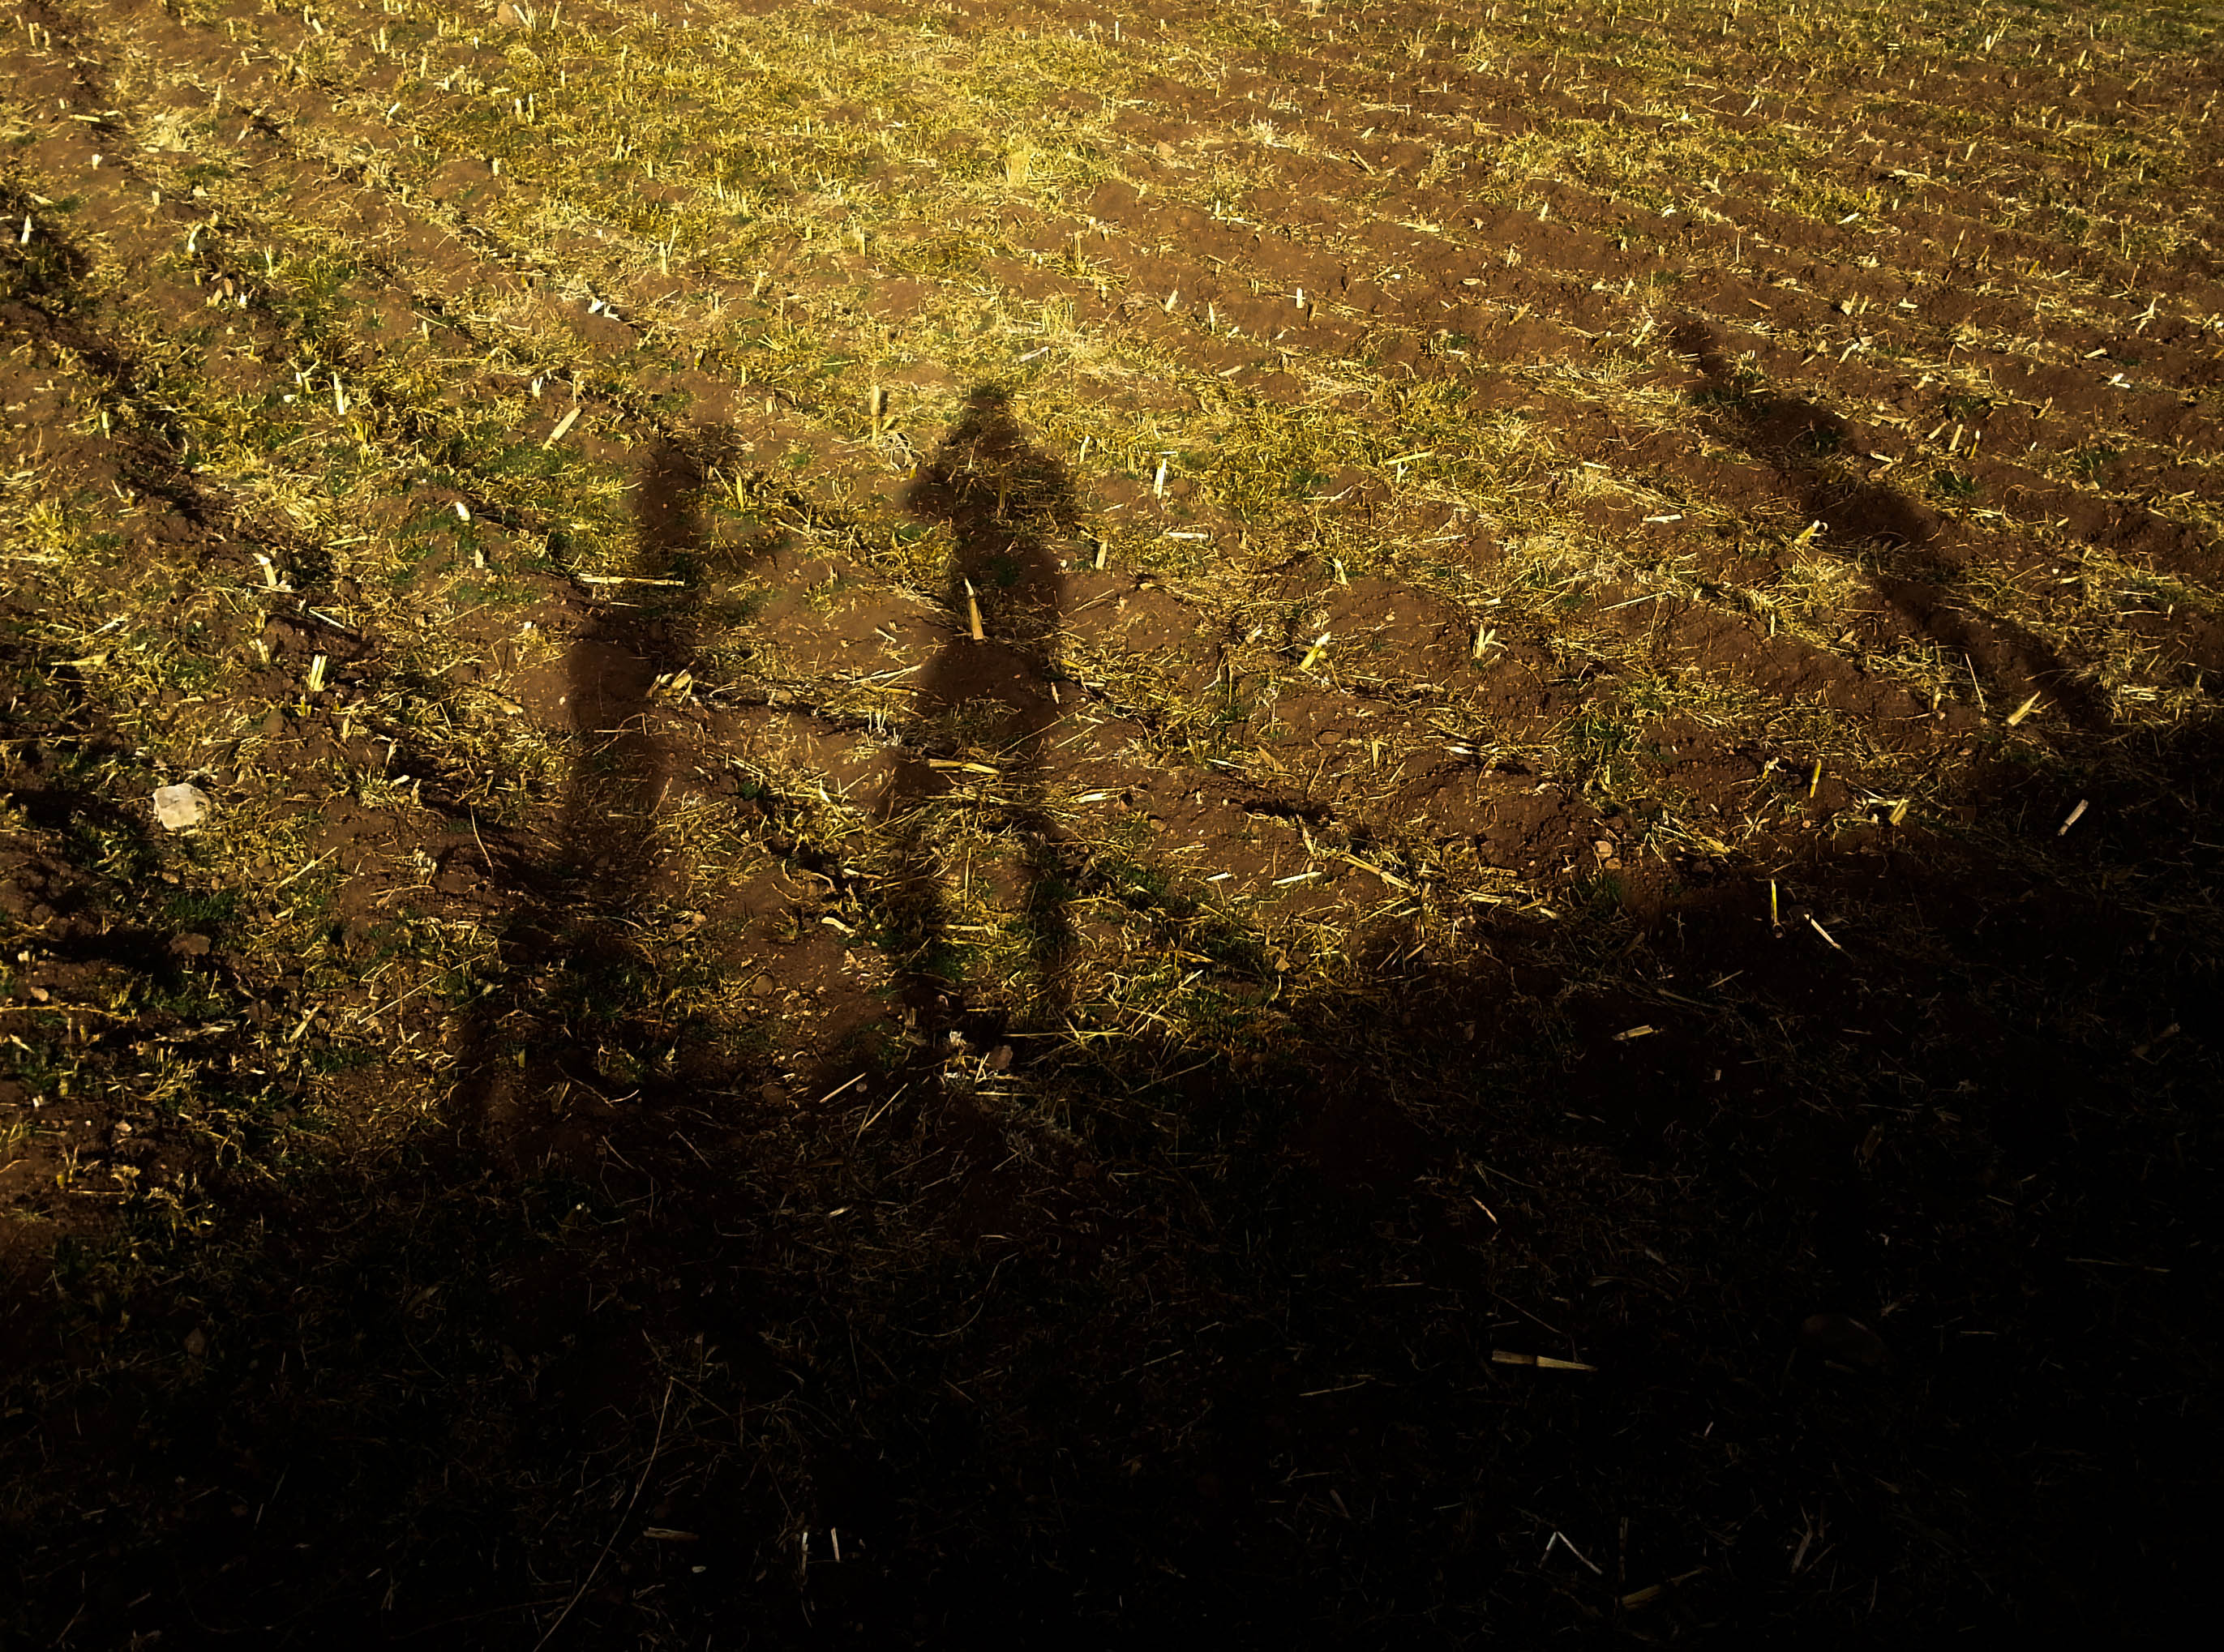 Shadows on Agricultural Field, Peru (©Guy van den Branden)